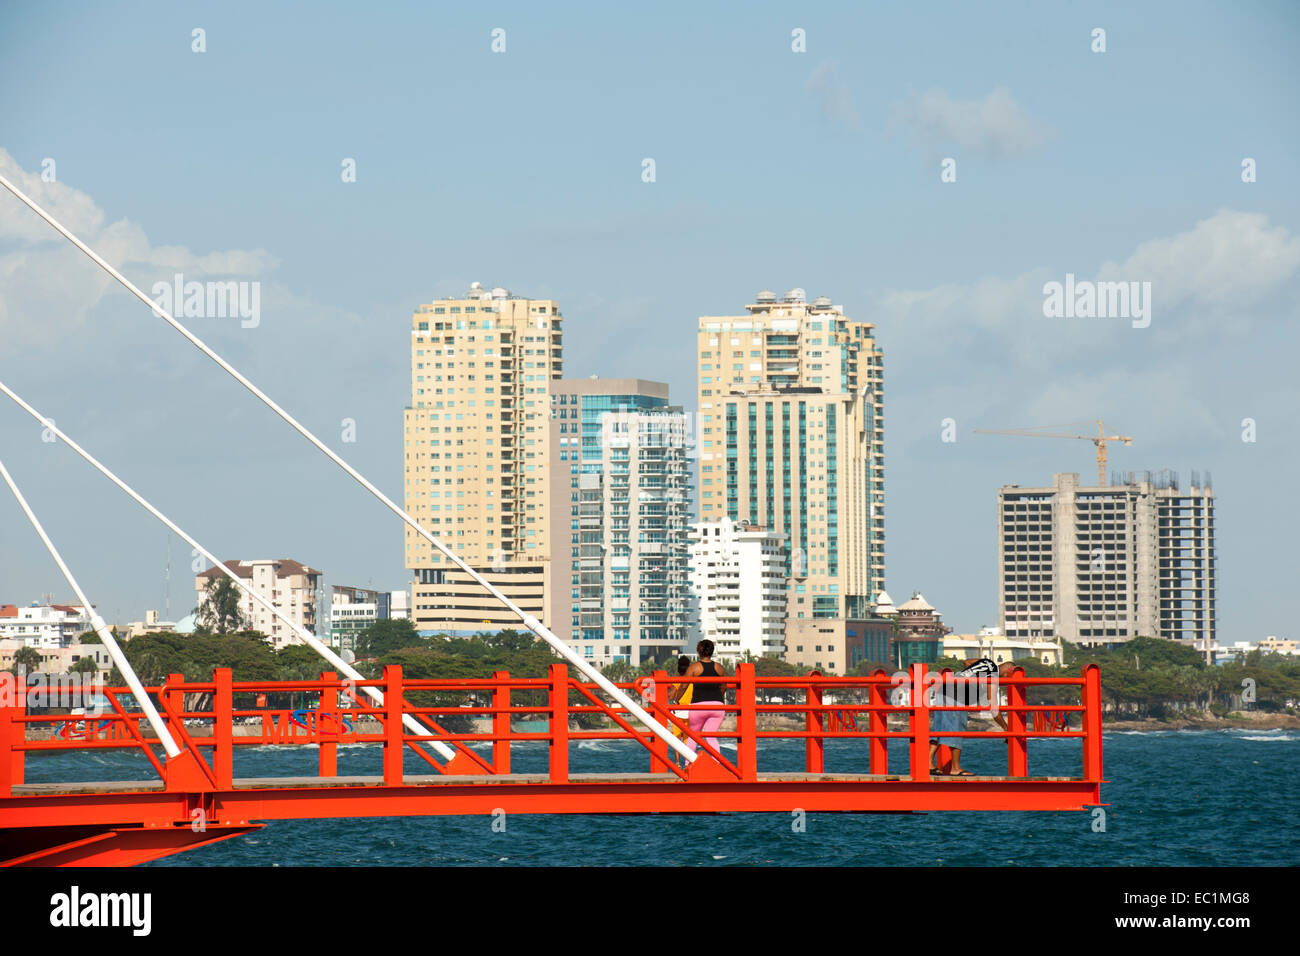 Dominikanische Republik, Santo Domingo, El Malecon (Avenida George Washington), Stockbild